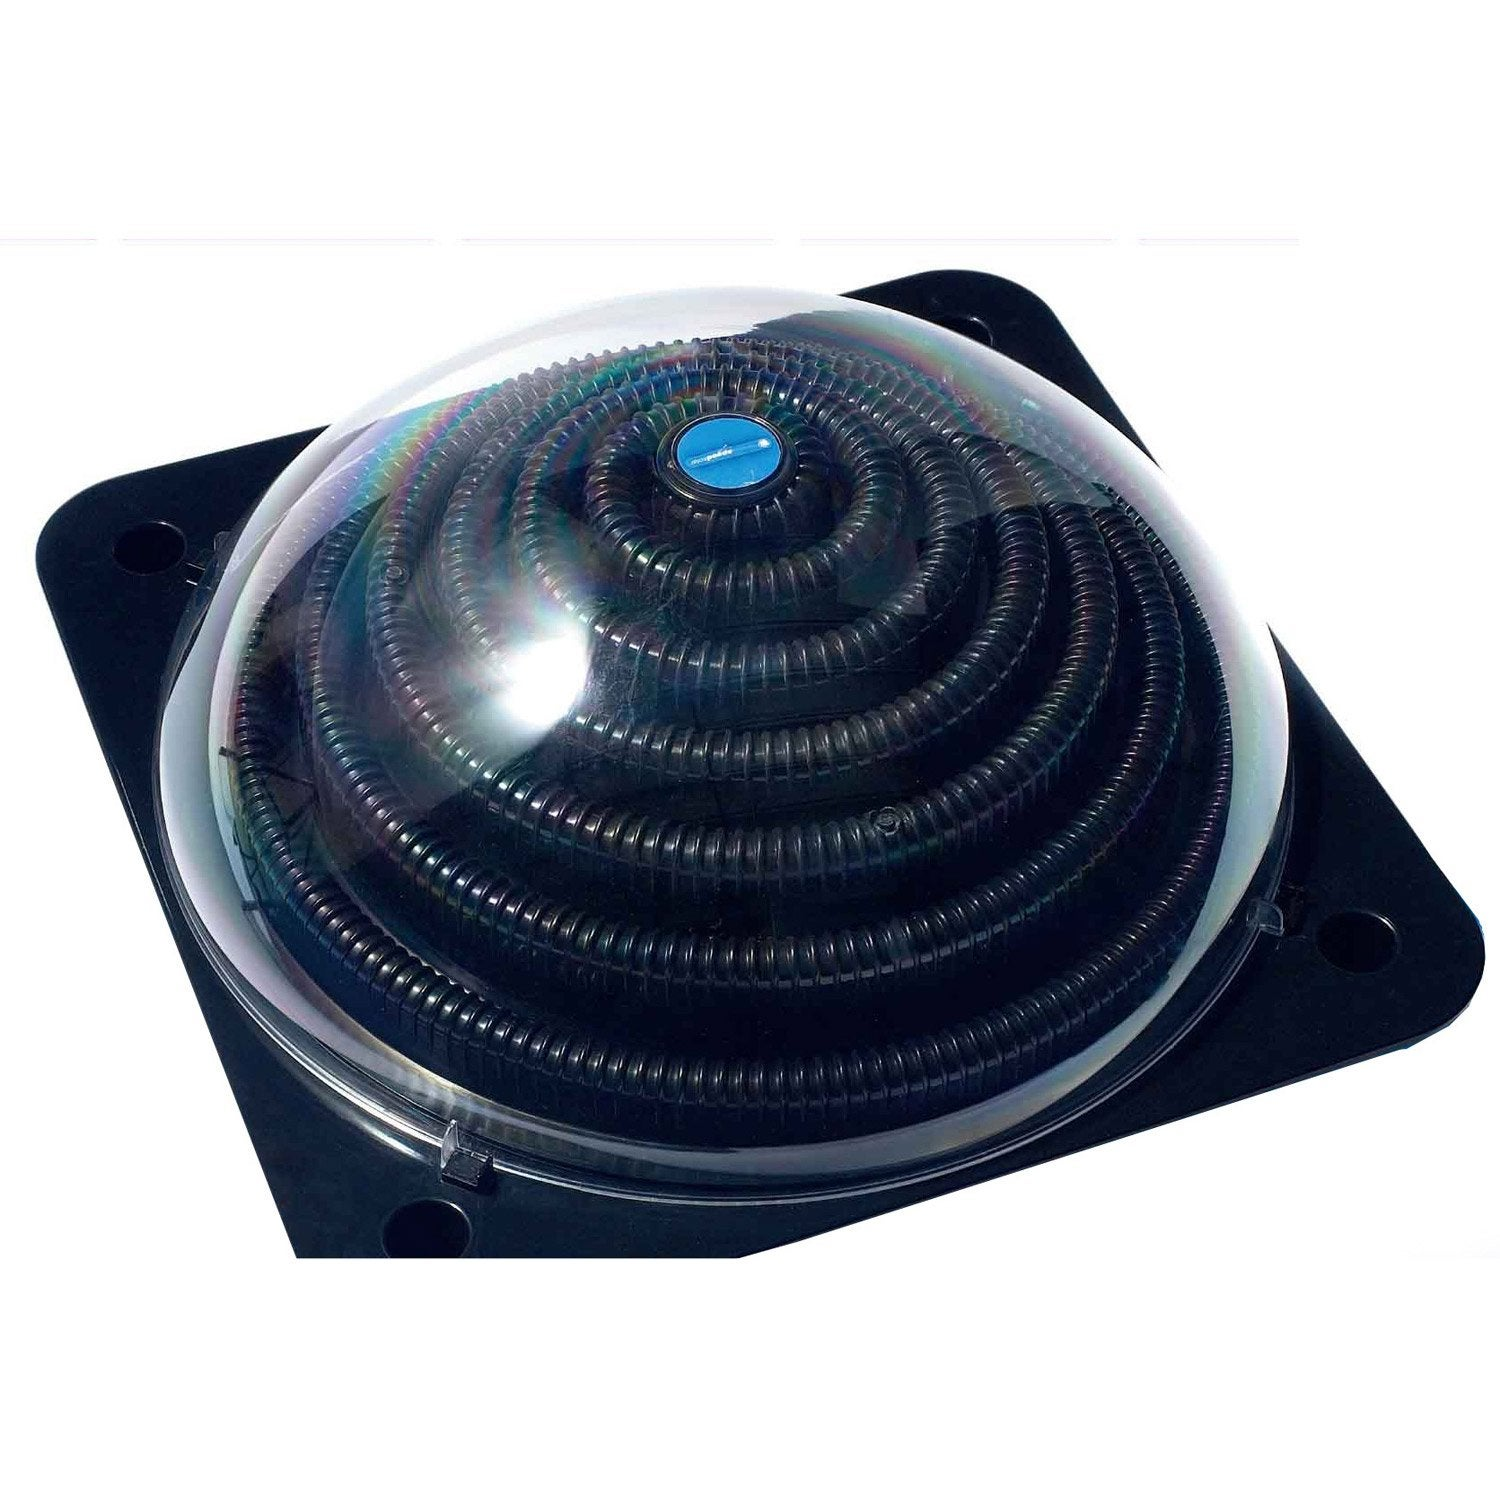 Chauffage solaire pour piscine pool expert leroy merlin for Chauffage piscine hors sol intex